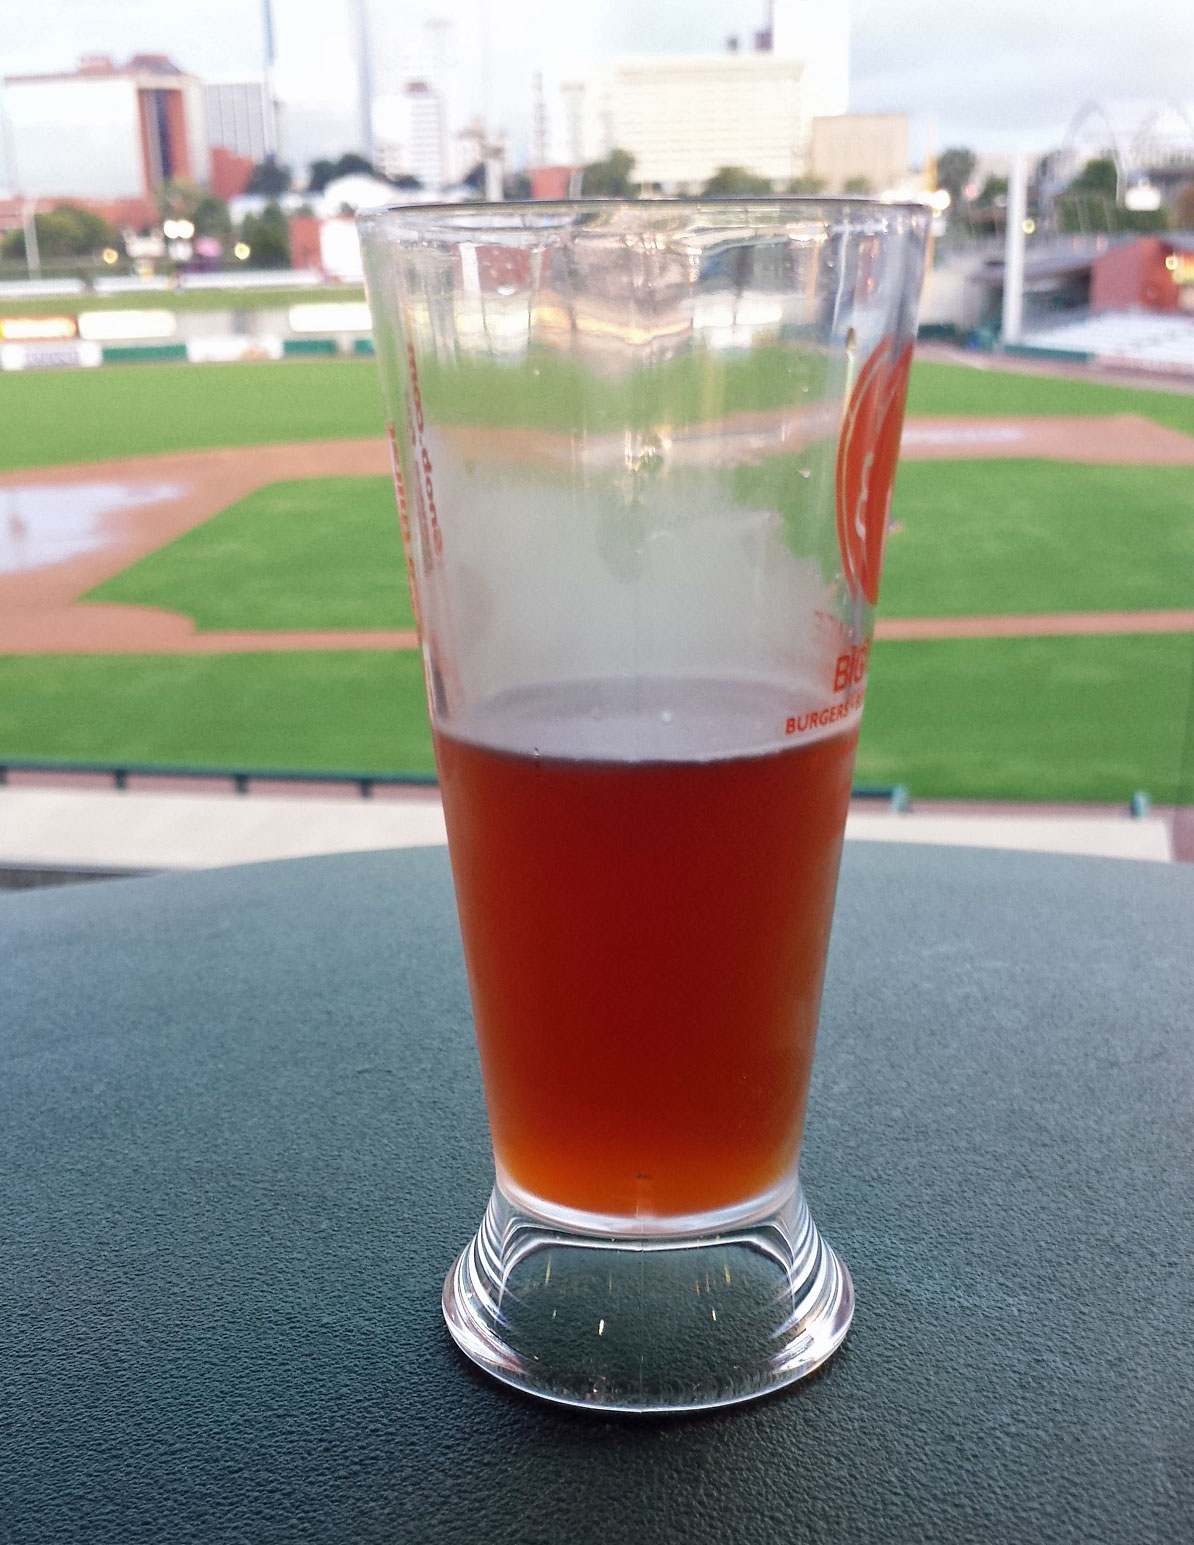 My first taste, it's October, I'm at a ballpark, sounds perfect.